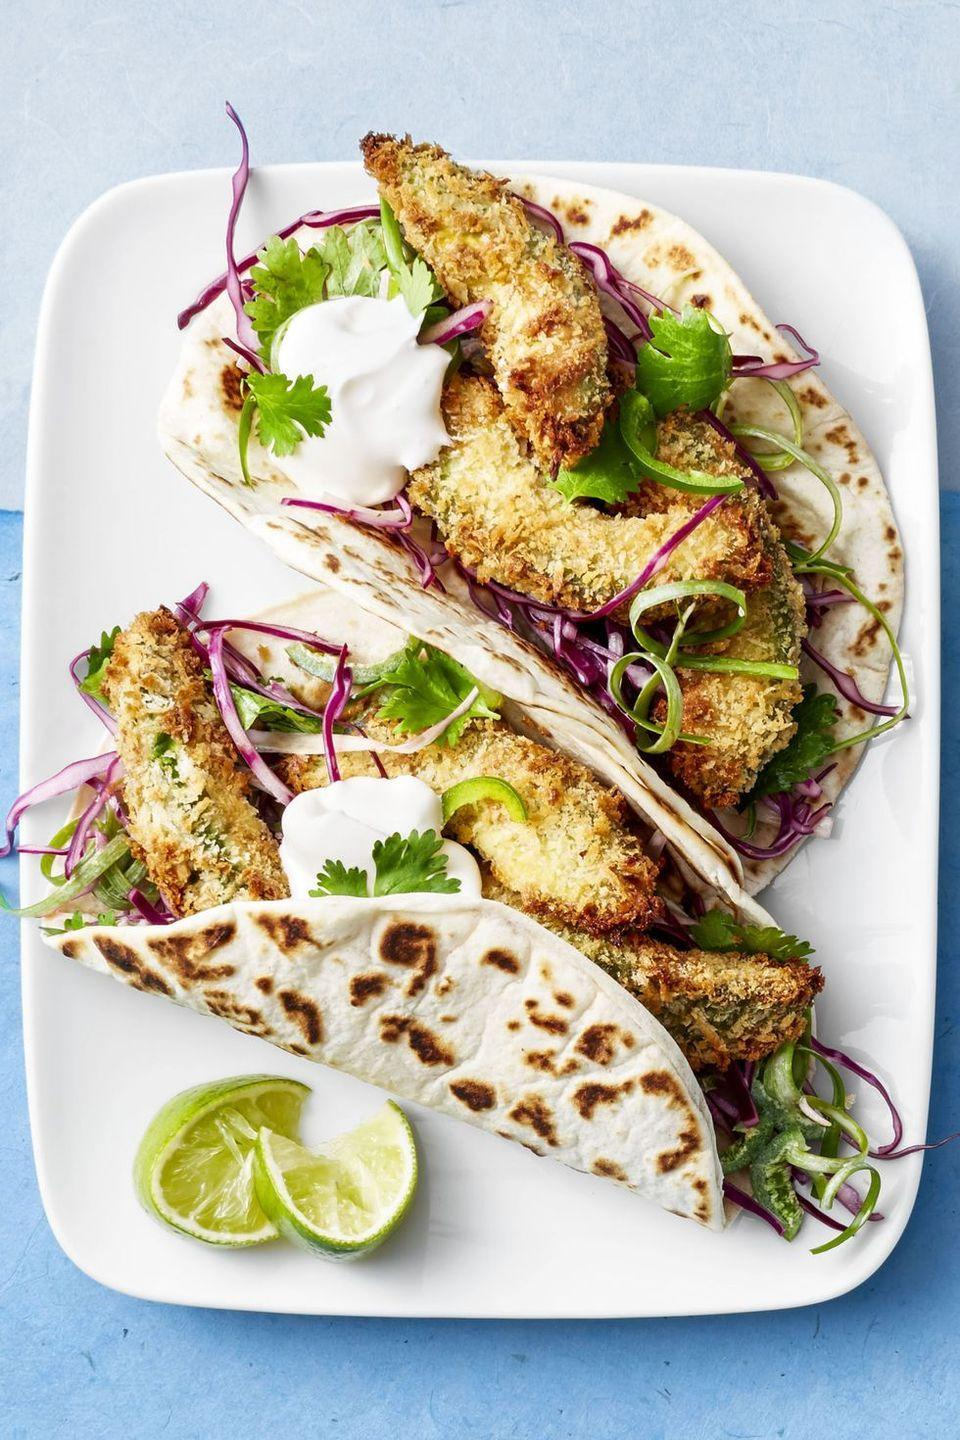 """<p>Take your avocado obsession to the next level by rolling them in breadcrumbs, air frying them to crispy perfection and stuffing them in a tortilla.</p><p><em><a href=""""https://www.goodhousekeeping.com/food-recipes/easy/a46646/fried-avocado-tacos-recipe/"""" rel=""""nofollow noopener"""" target=""""_blank"""" data-ylk=""""slk:Get the recipe for Air Fryer &quot;Fried&quot; Avocado Tacos »"""" class=""""link rapid-noclick-resp"""">Get the recipe for Air Fryer """"Fried"""" Avocado Tacos »</a></em></p><p><strong>RELATED: </strong><a href=""""https://www.goodhousekeeping.com/food-recipes/g655/avocado-recipes/"""" rel=""""nofollow noopener"""" target=""""_blank"""" data-ylk=""""slk:53 Ways to Use Avocado So That Your Next Meal Is Extra-Nutritious"""" class=""""link rapid-noclick-resp"""">53 Ways to Use Avocado So That Your Next Meal Is Extra-Nutritious</a><br></p>"""